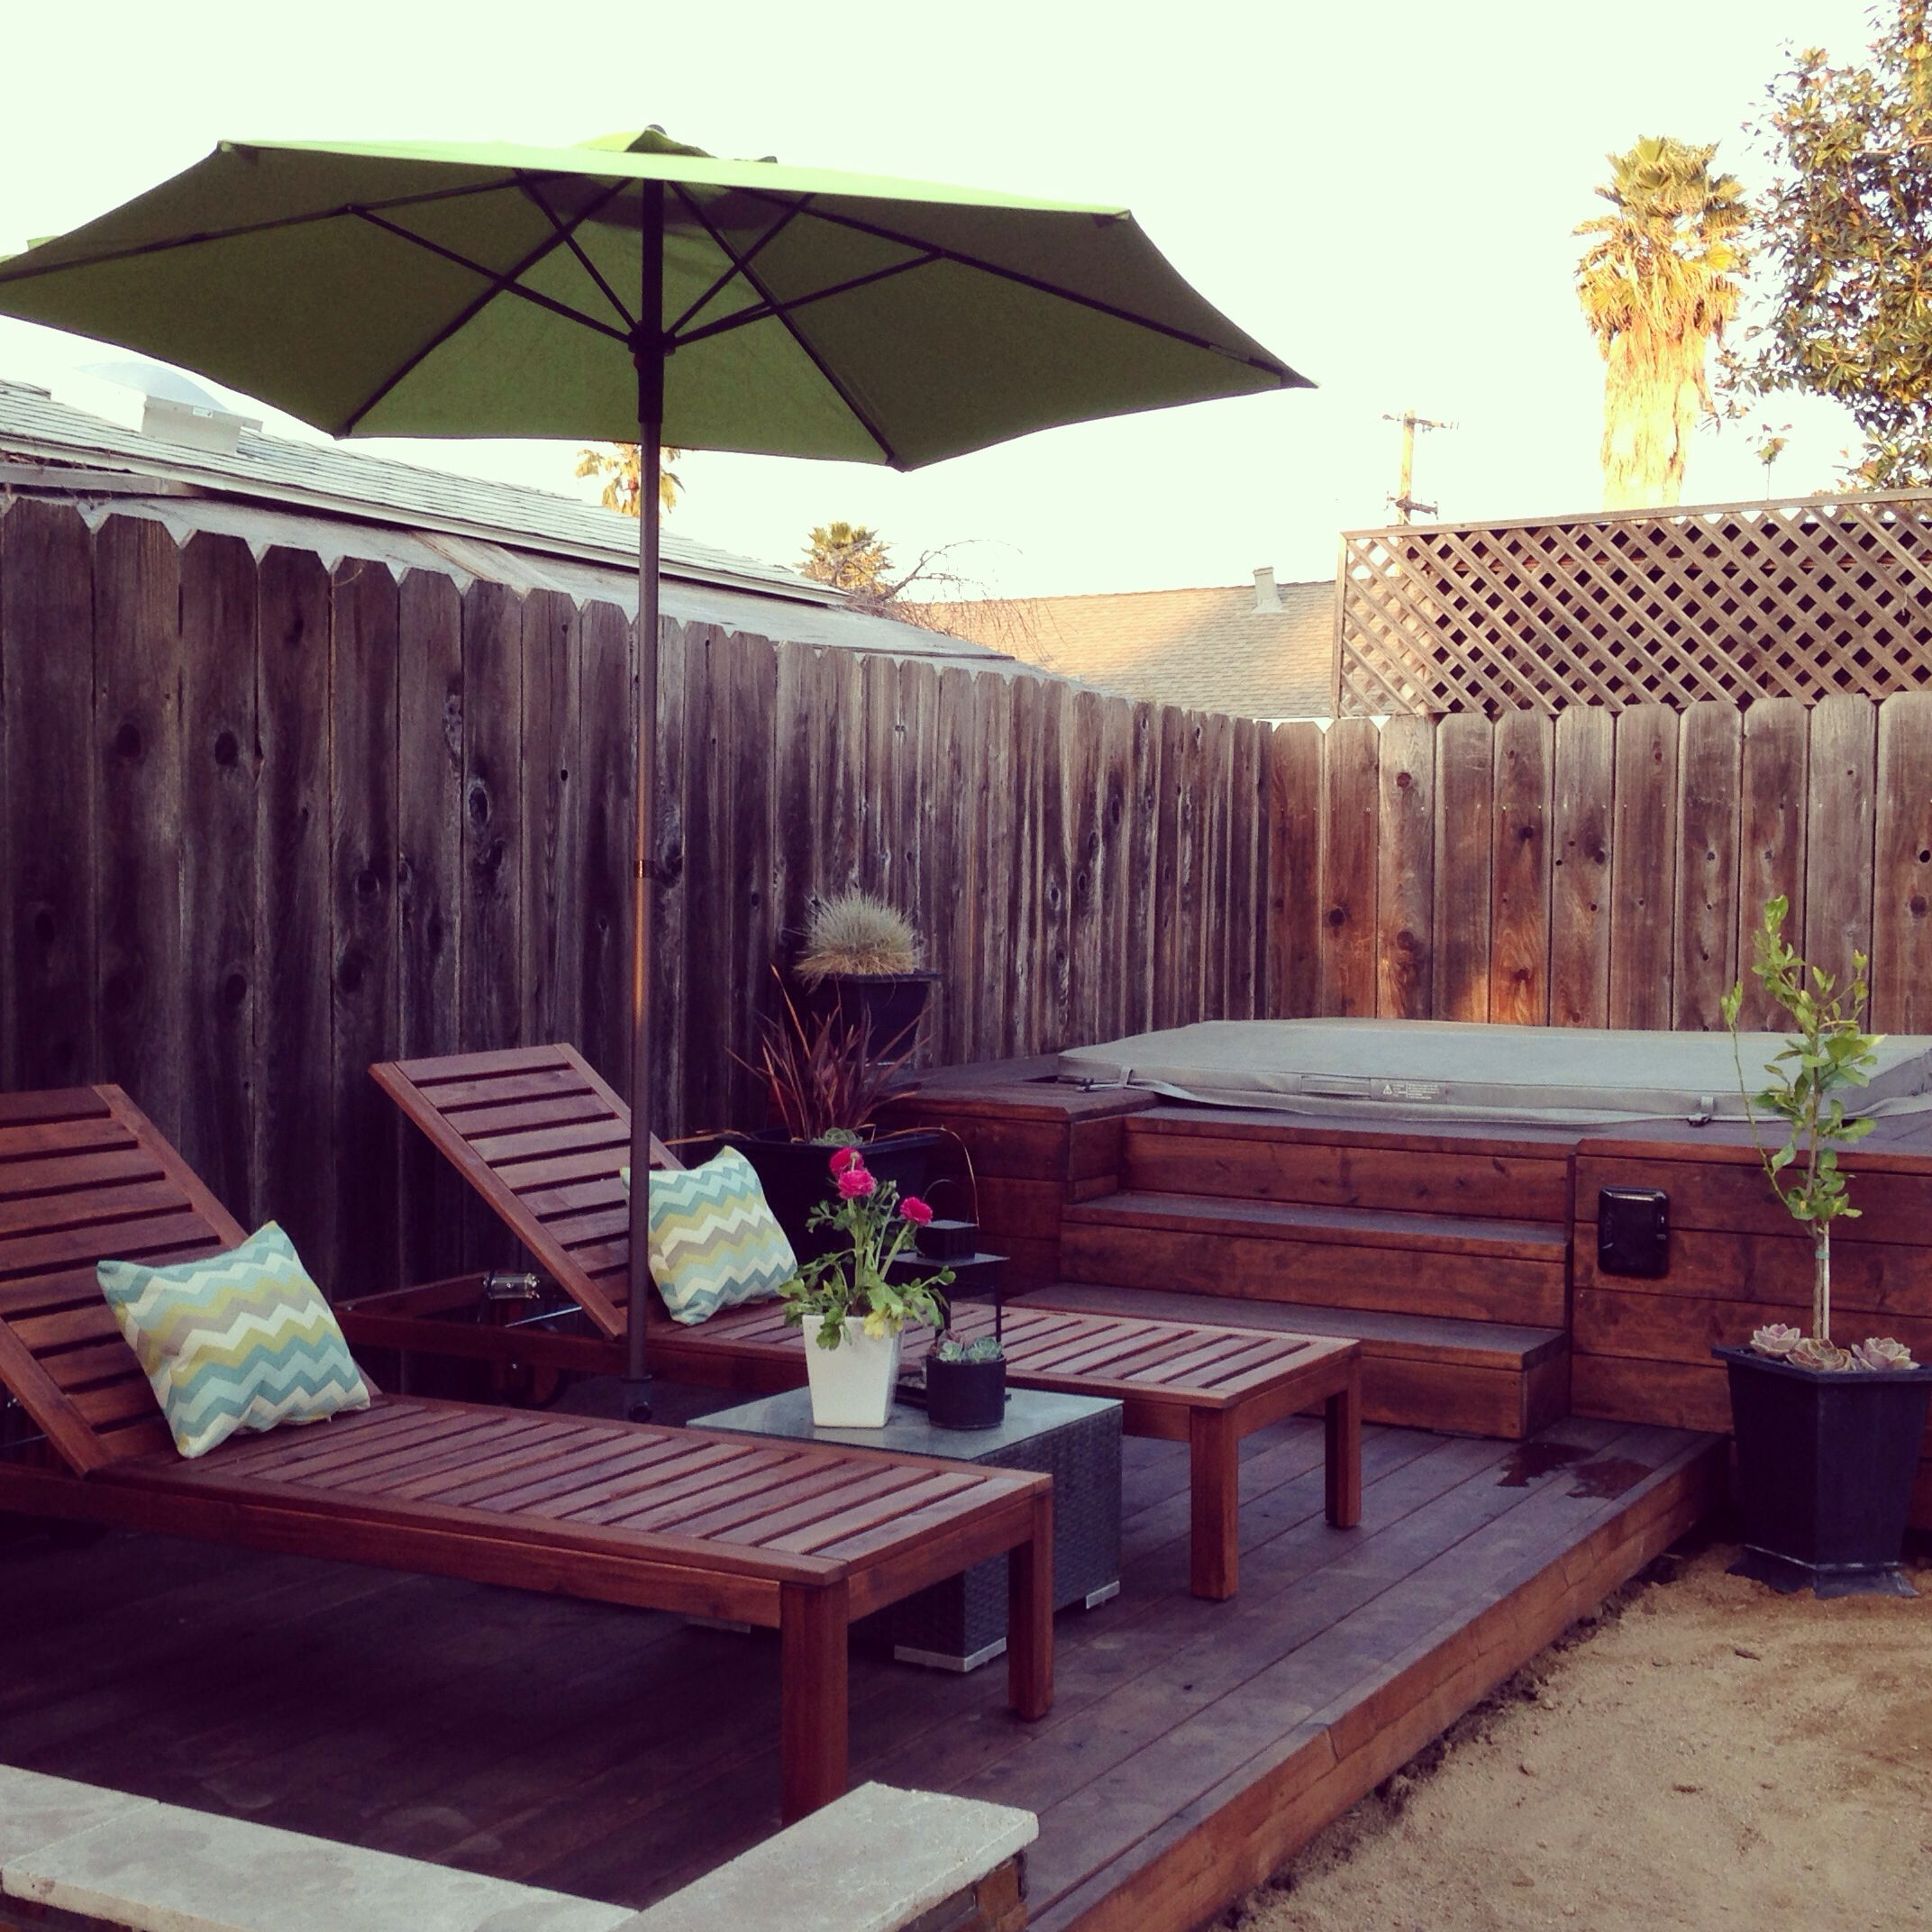 Ikea lounge chairs, Home Depot Pear Umbrella, stained deck